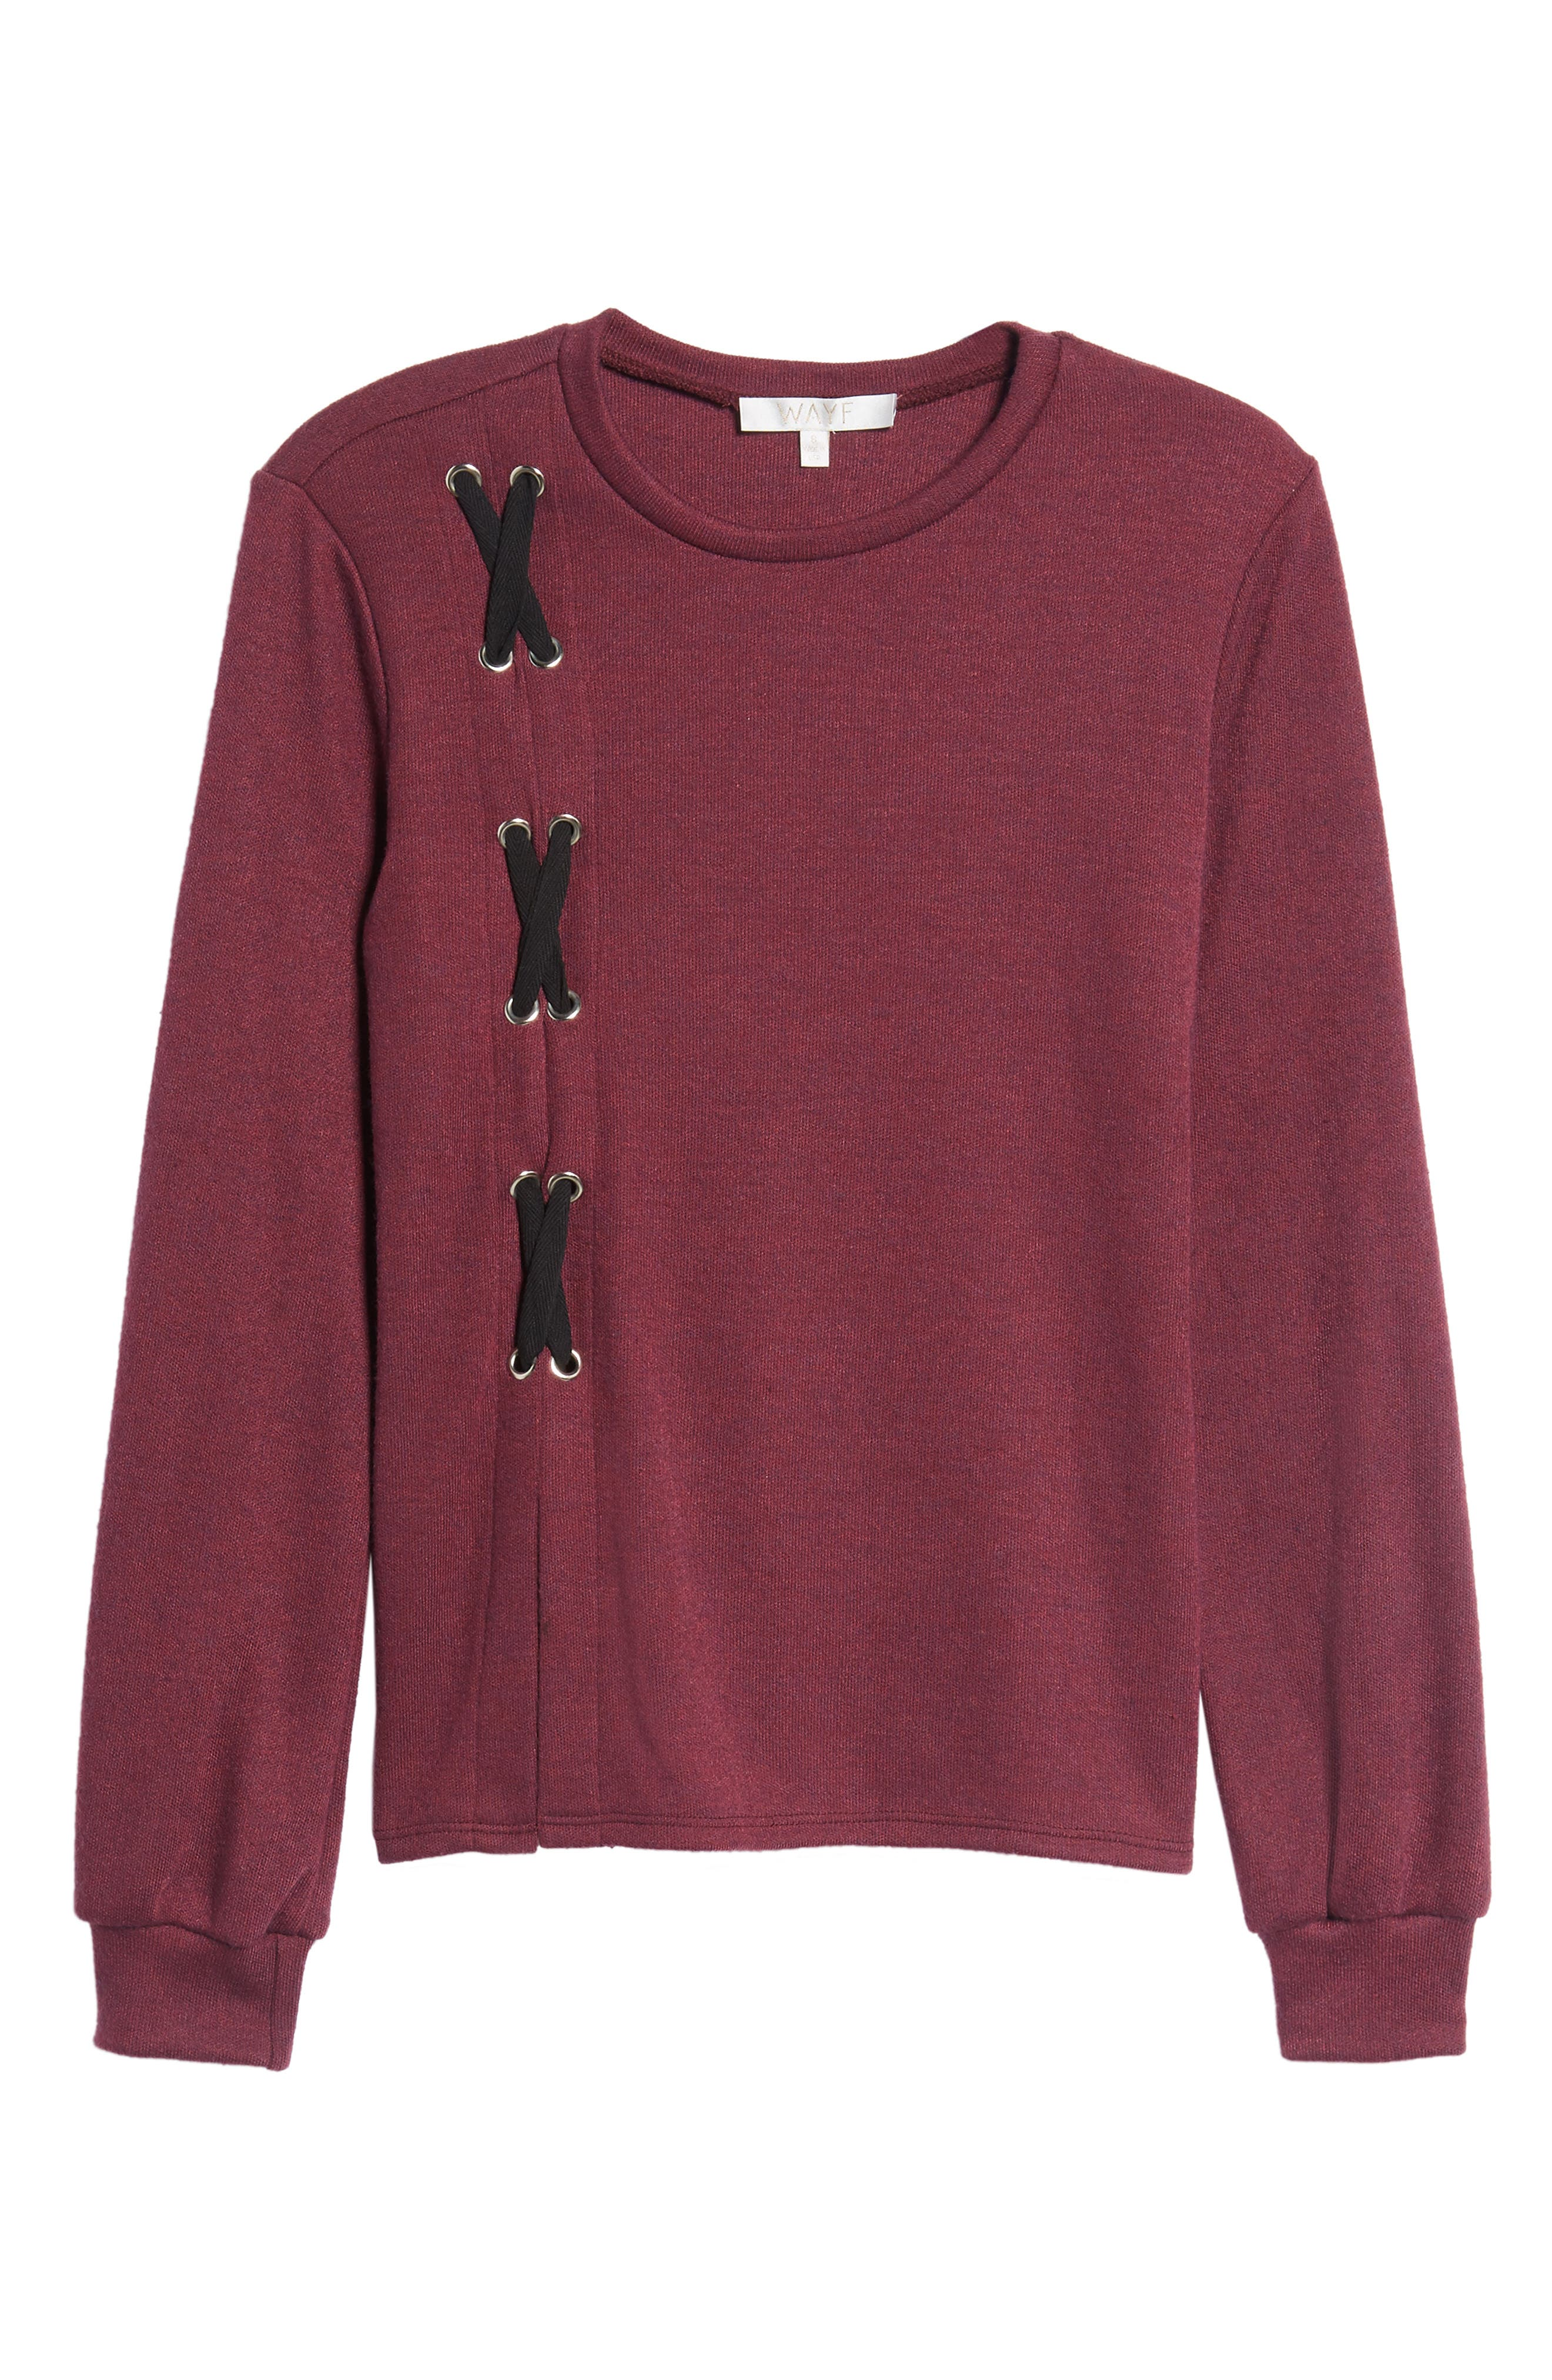 Lace-Up Sweater,                             Alternate thumbnail 6, color,                             Burgundy